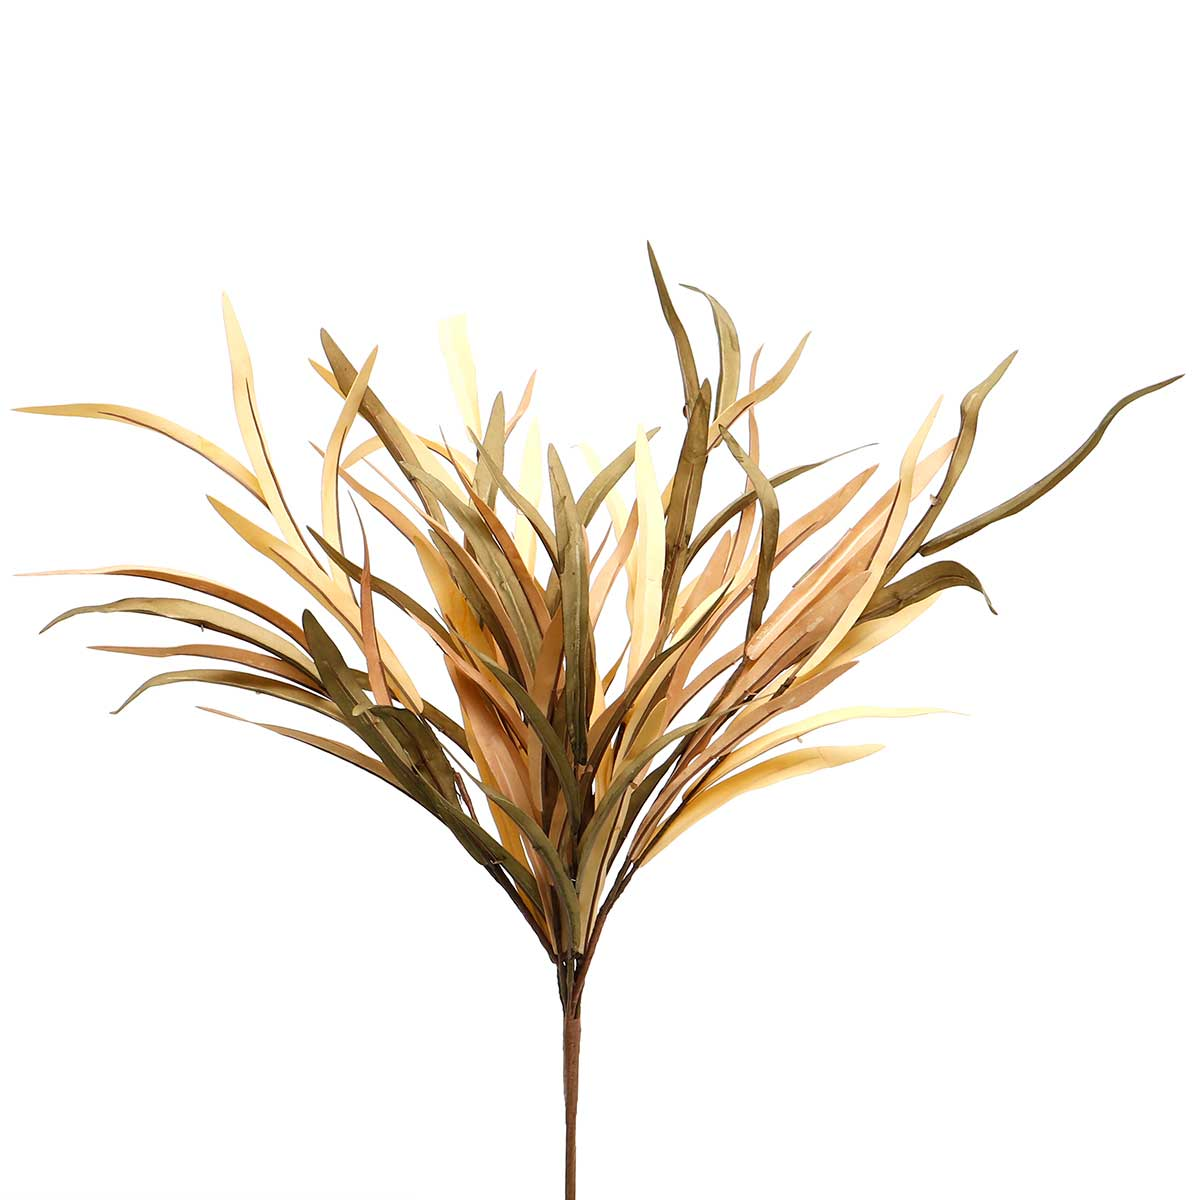 "AUTUMN GRASS BUSH 15""X24"" -MeraVic Exclusive Design"